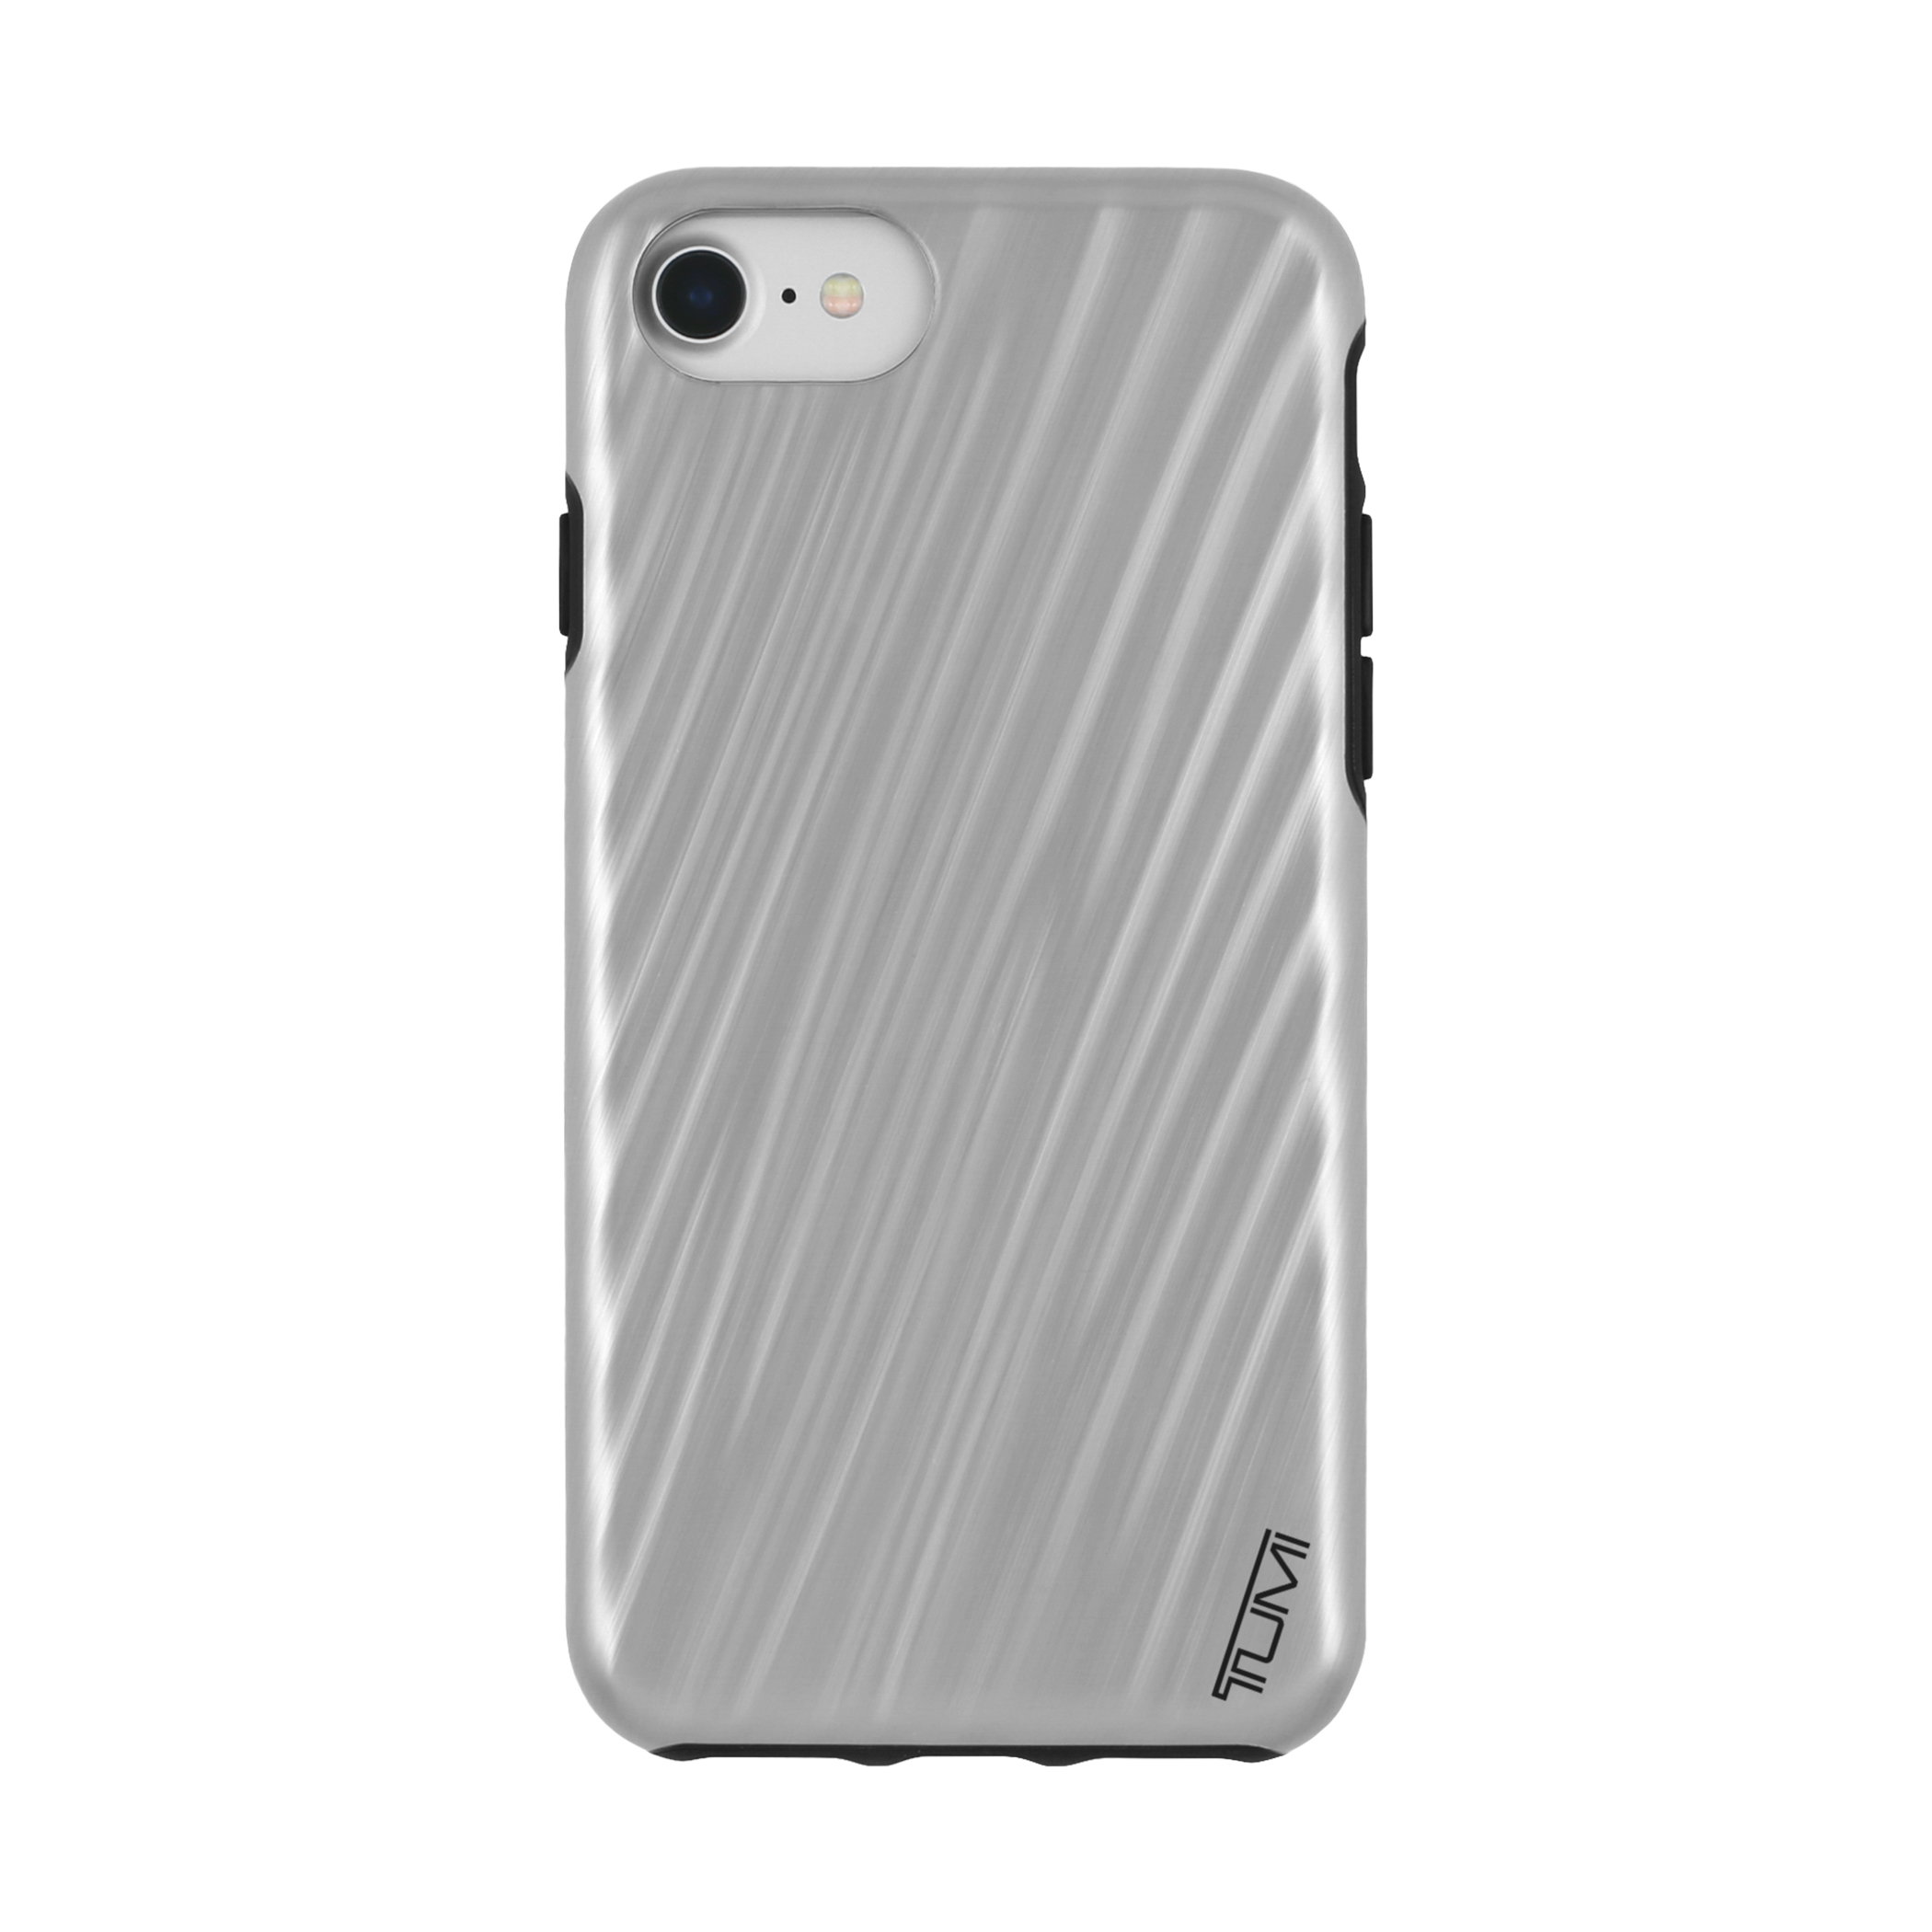 online retailer e1725 c494a TUMI 19 Degree Case for iPhone 7 - Metallic Silver